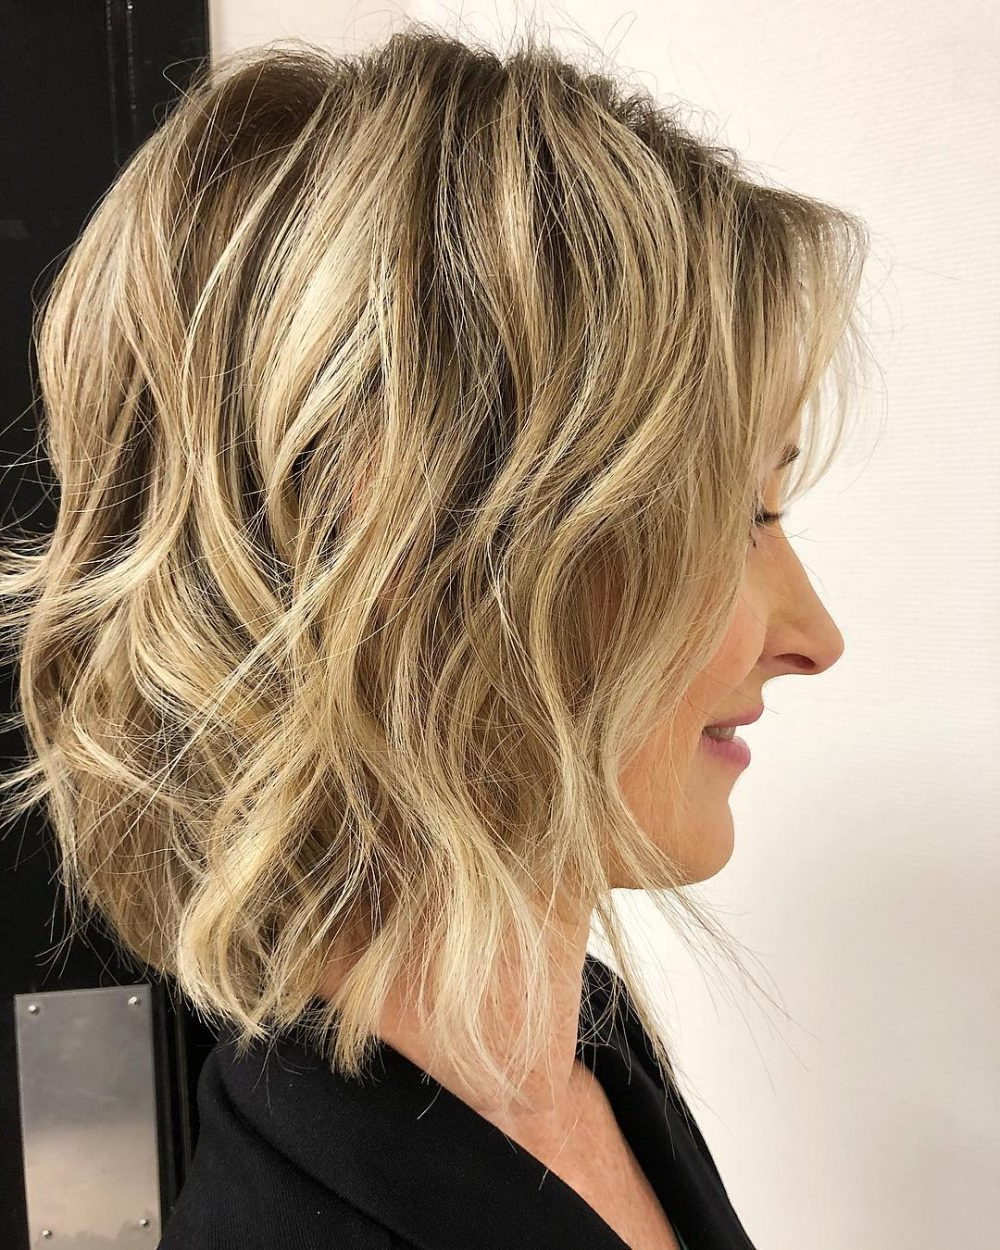 43 Perfect Short Hairstyles For Fine Hair In 2018 In Funky Short Haircuts For Fine Hair (View 6 of 25)